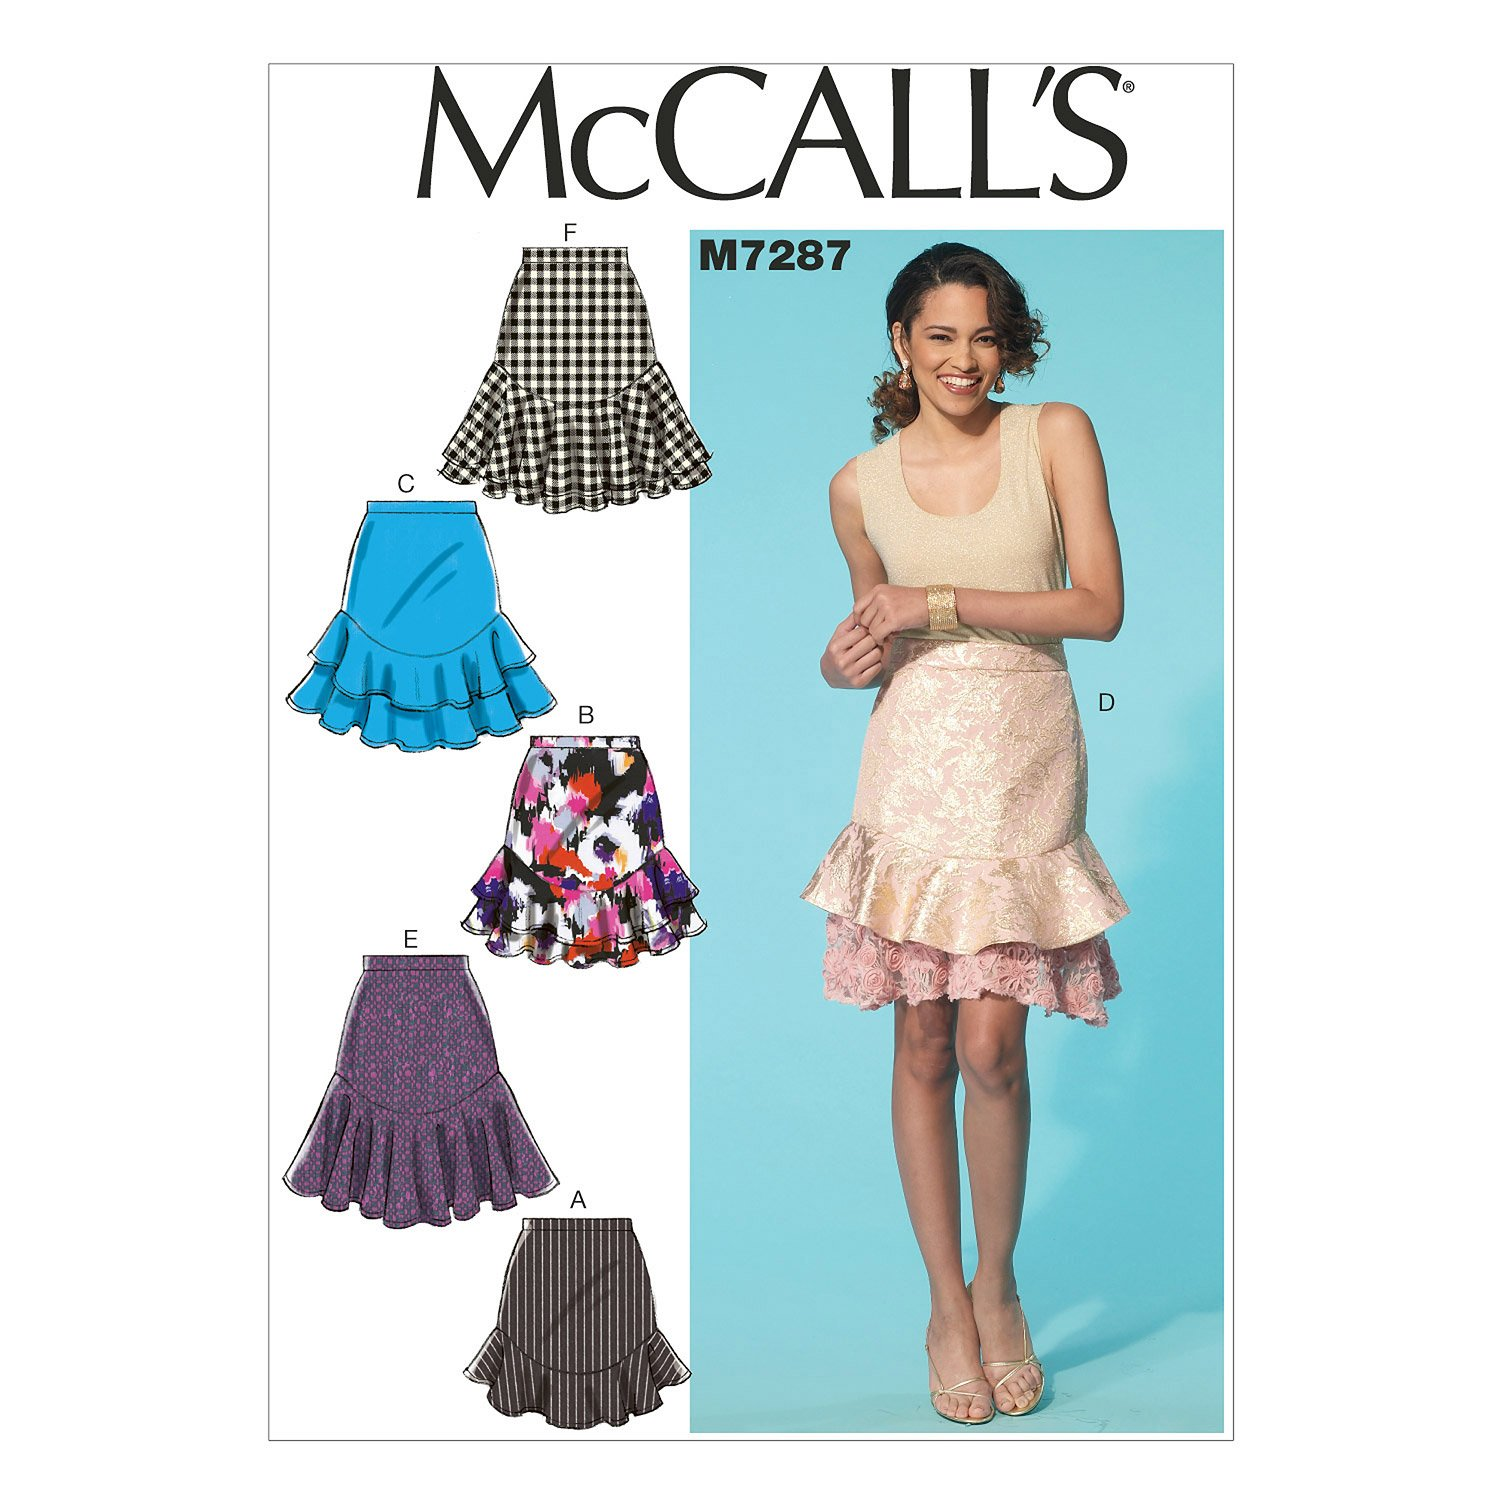 McCall's Patterns M7287 Misses' Skirts, Size A5 (6-8-10-12-14)